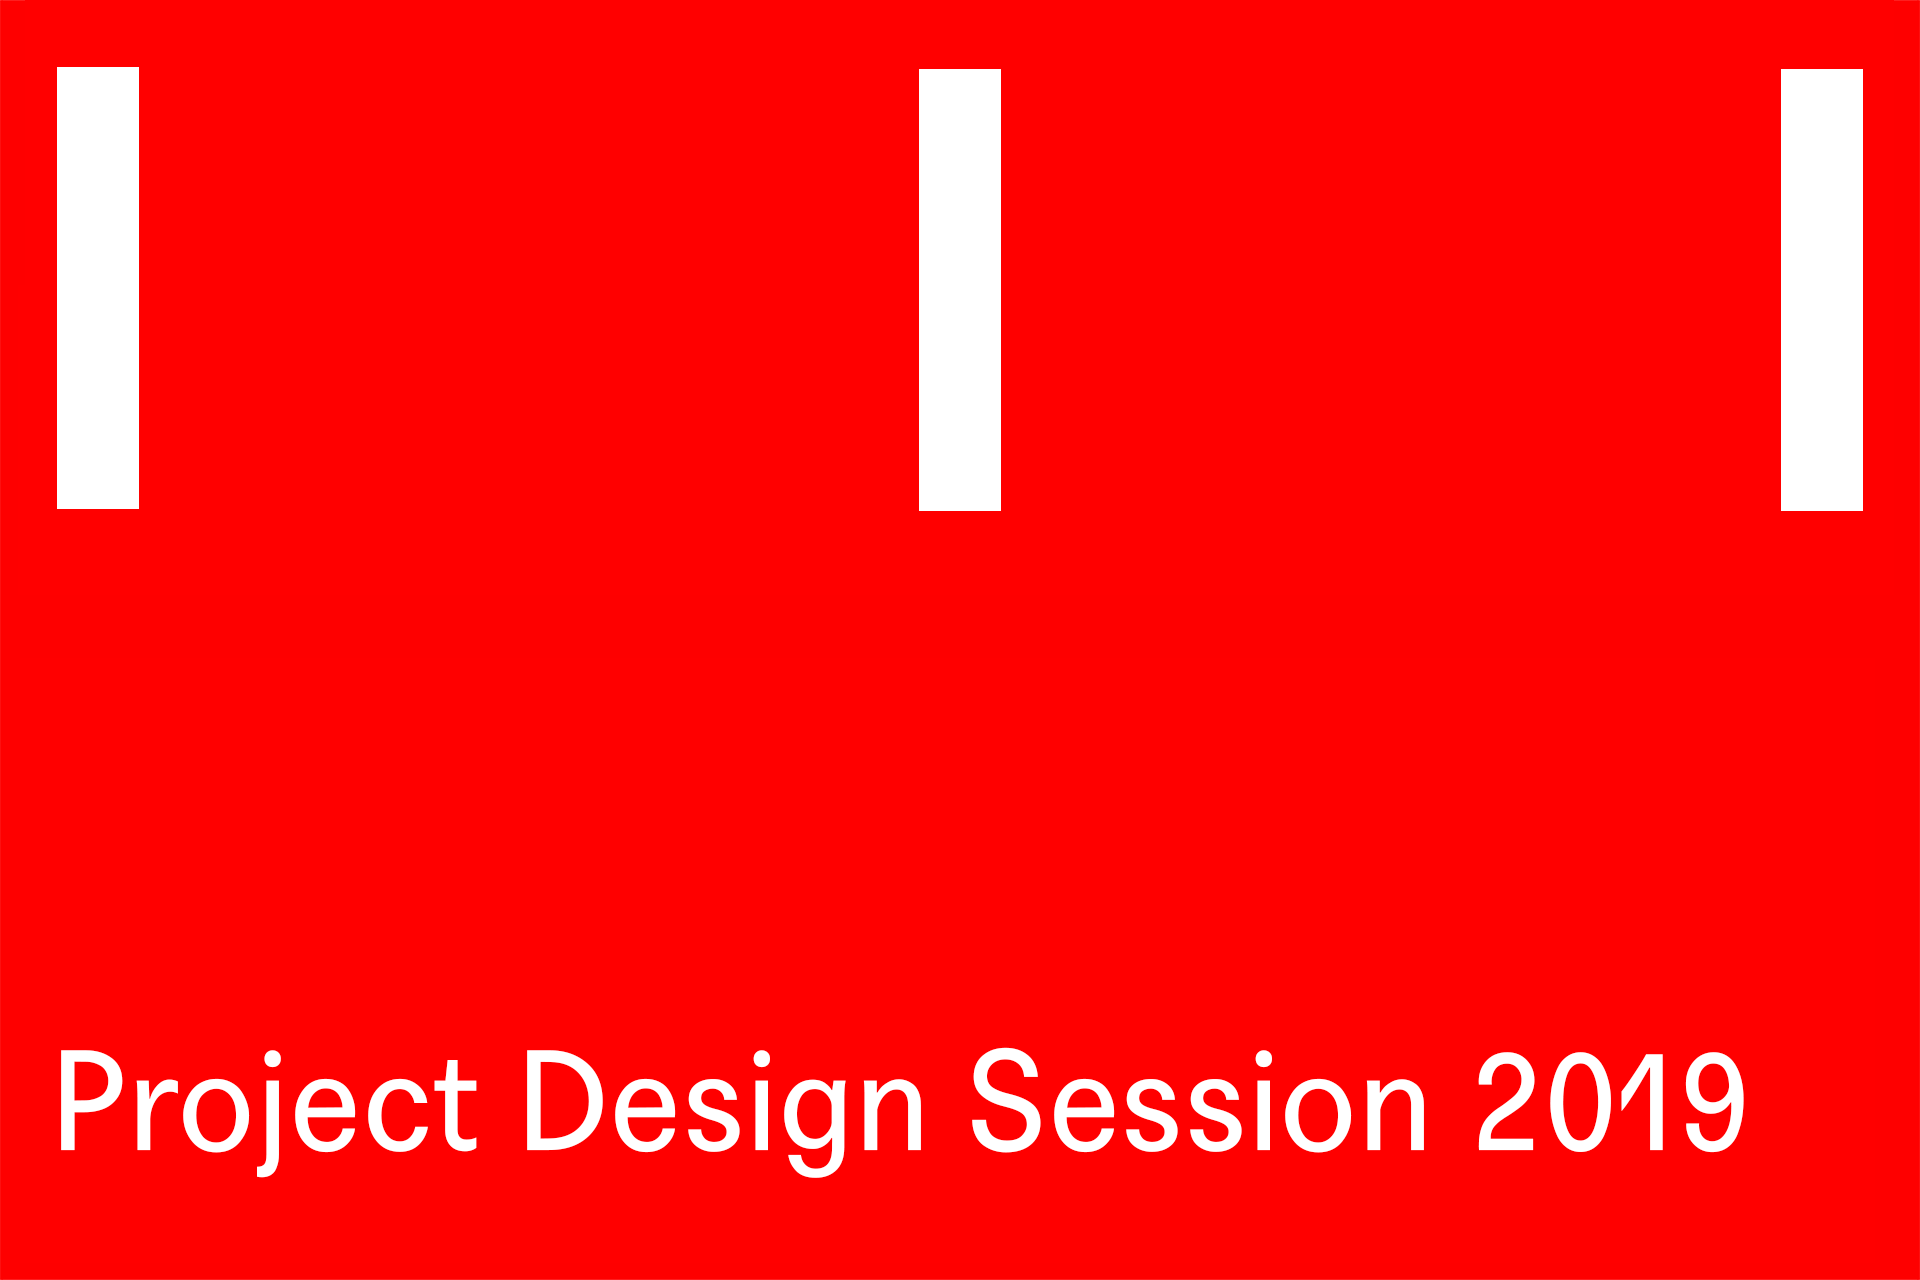 Project Design Session 2019